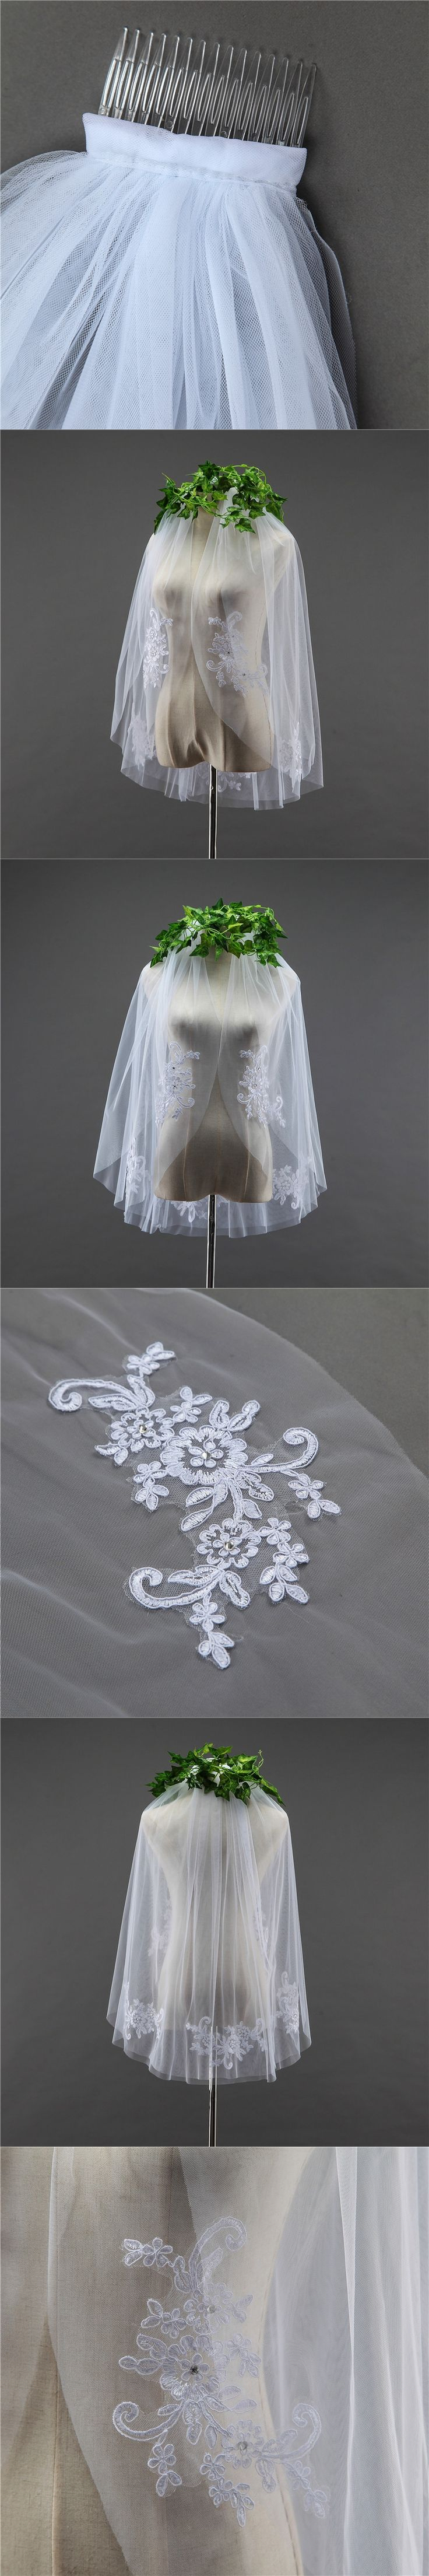 In Stock Short One Layer waist length Stick Crystal appliqued white ivory wedding veil bridal veils